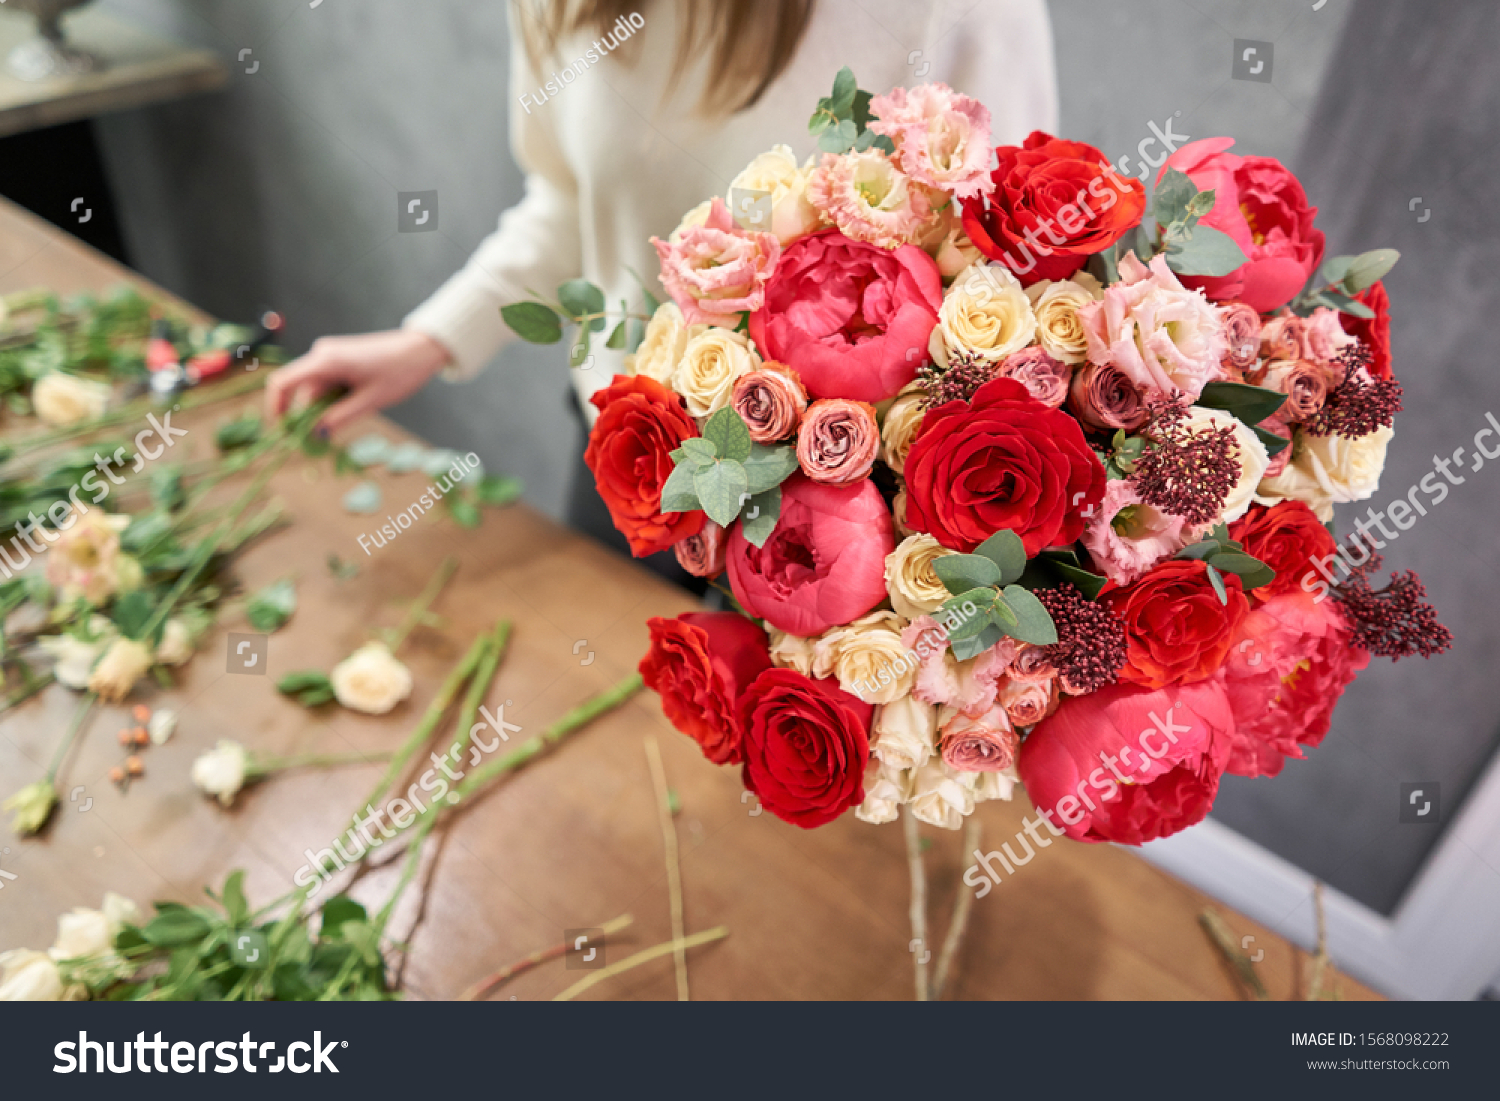 European floral shop concept. Florist woman creates red beautiful bouquet of mixed flowers. Handsome fresh bunch. Education, master class and floristry courses. Flowers delivery. #1568098222